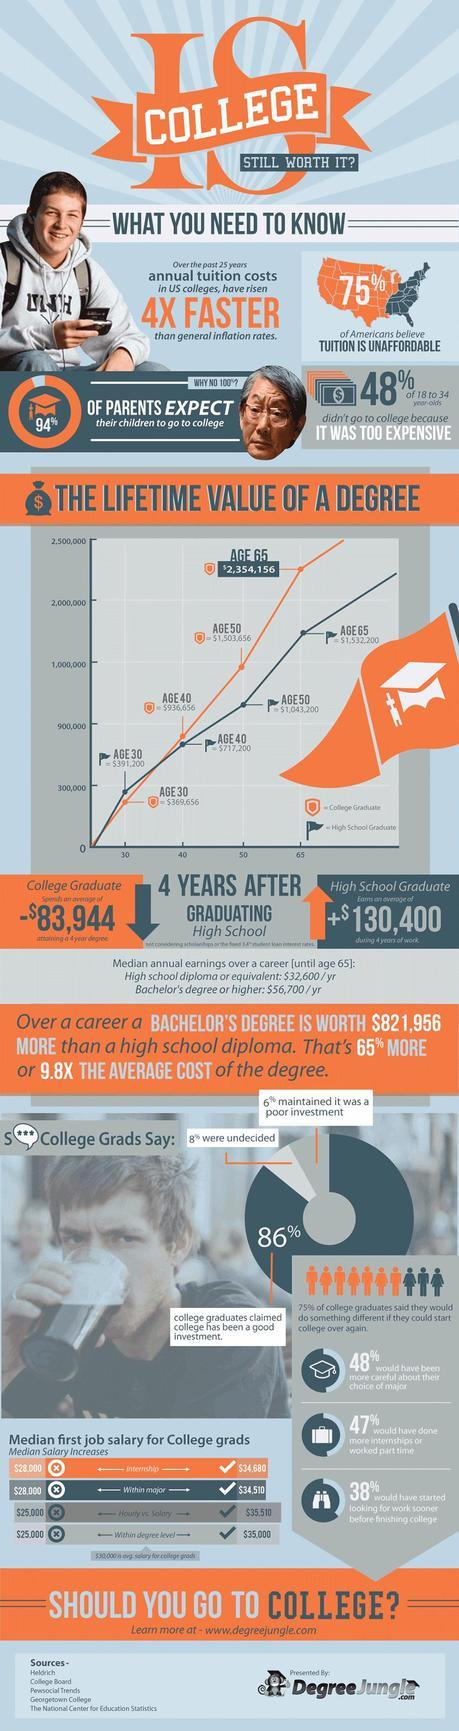 Infographic Looking At Whether A College Degree Is Worth The Investment